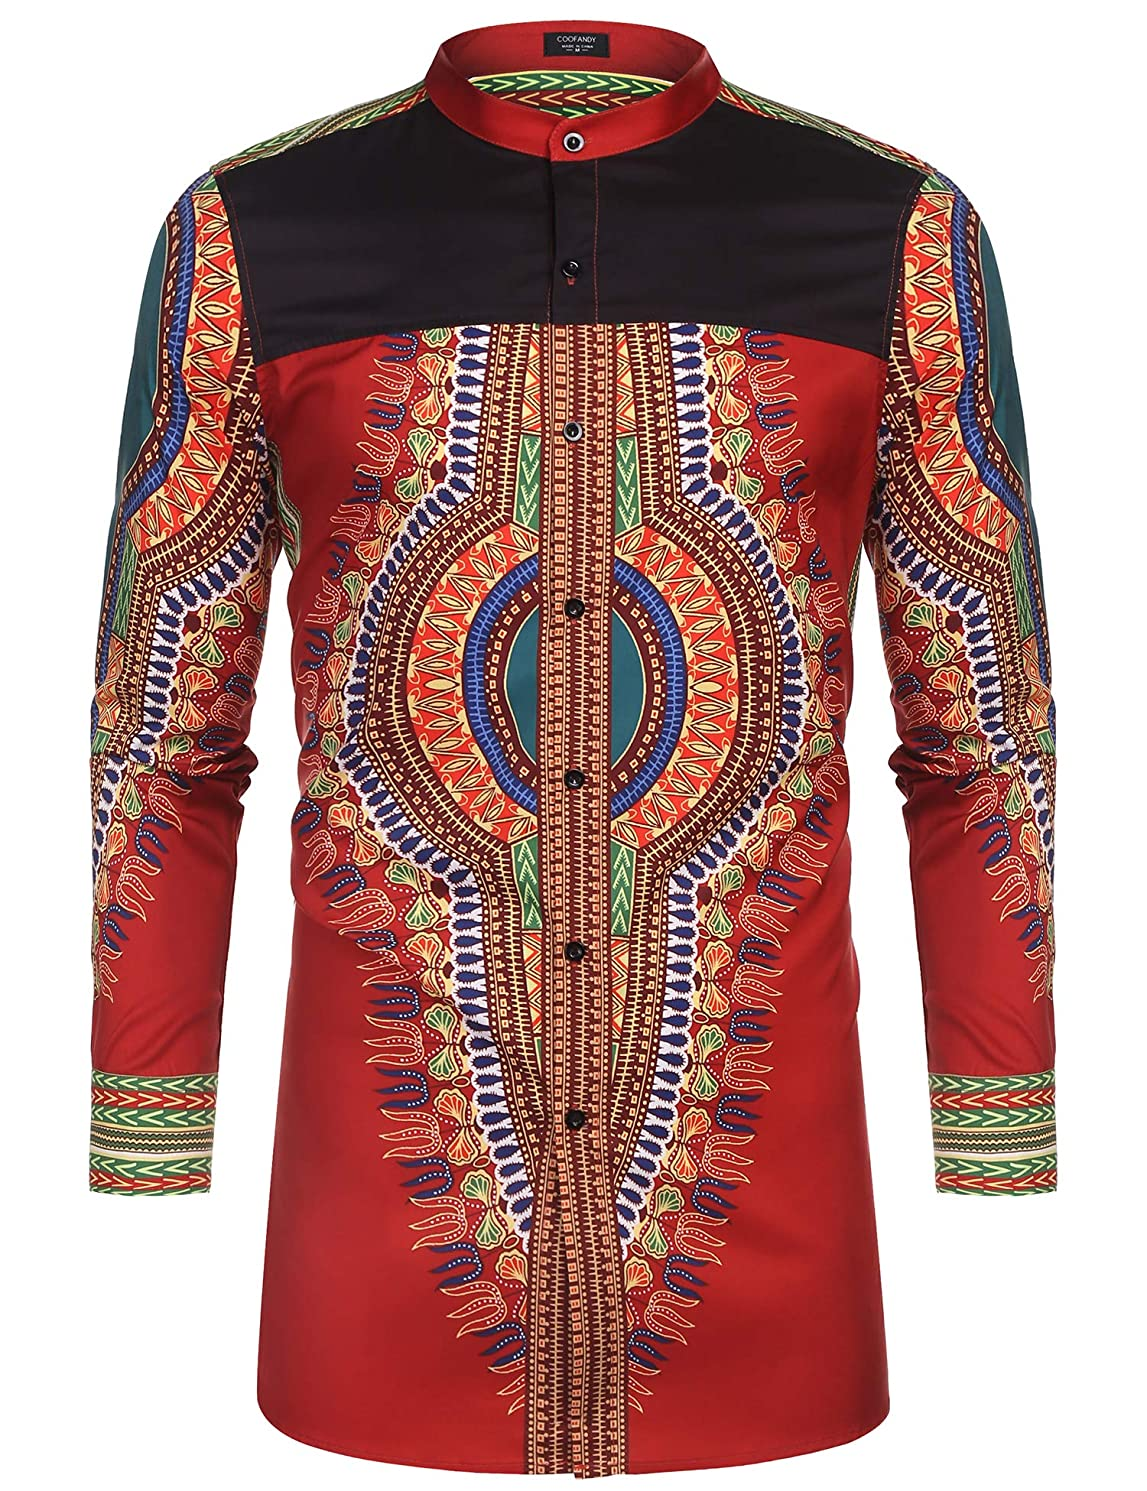 COOFANDY Men's African Dashiki Print Shirt Long Sleeve Button Down Shirt Bright Color Tribal Top Shirt